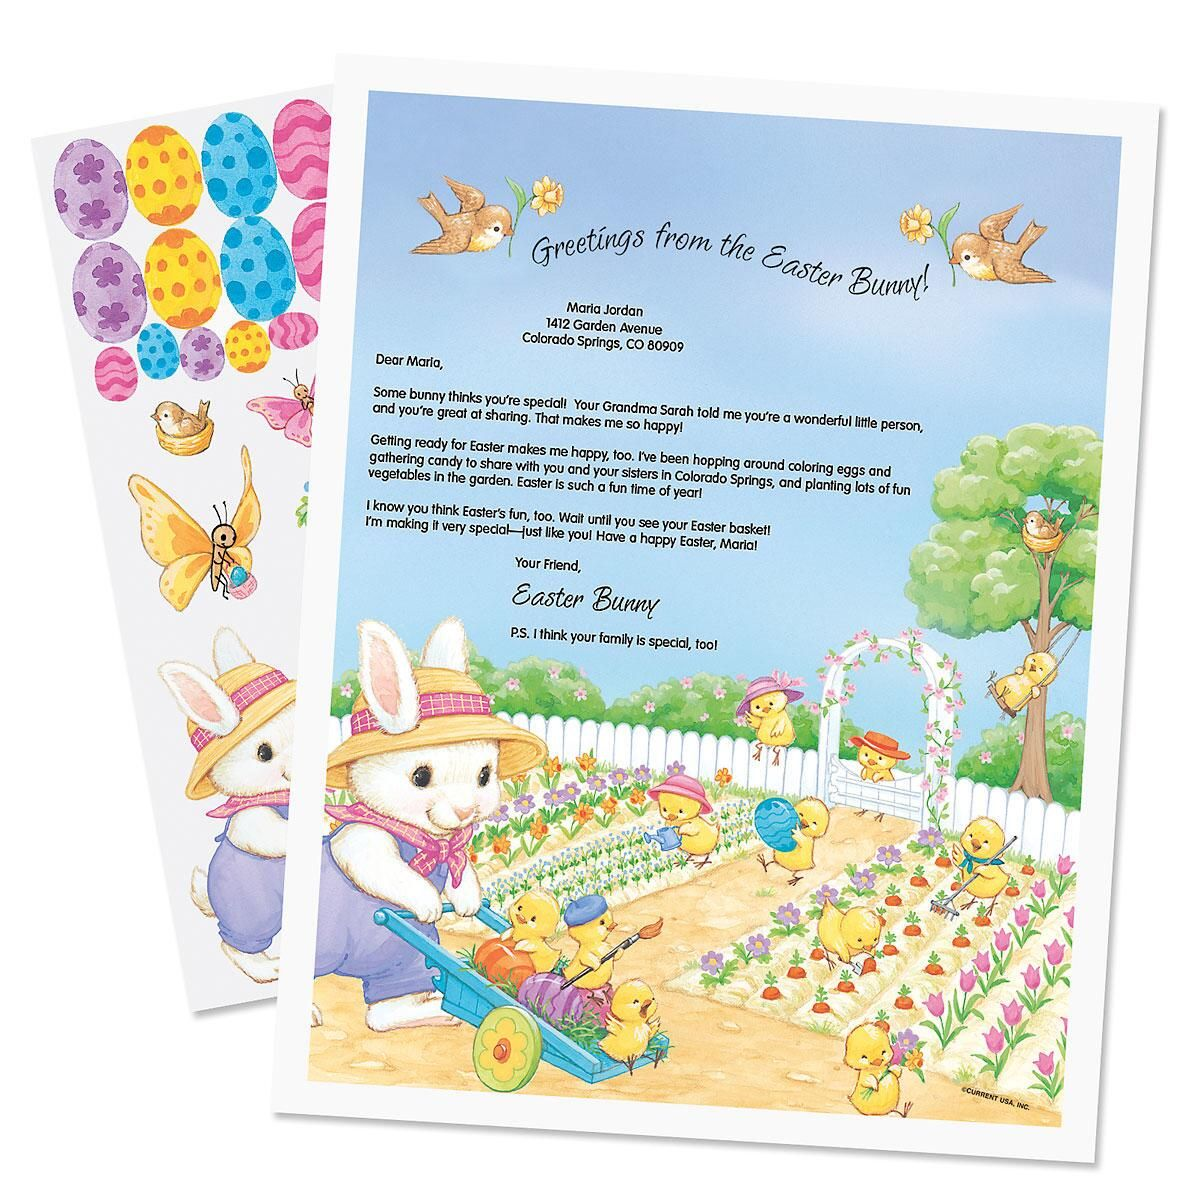 Easter Bunny Letter with Stickers